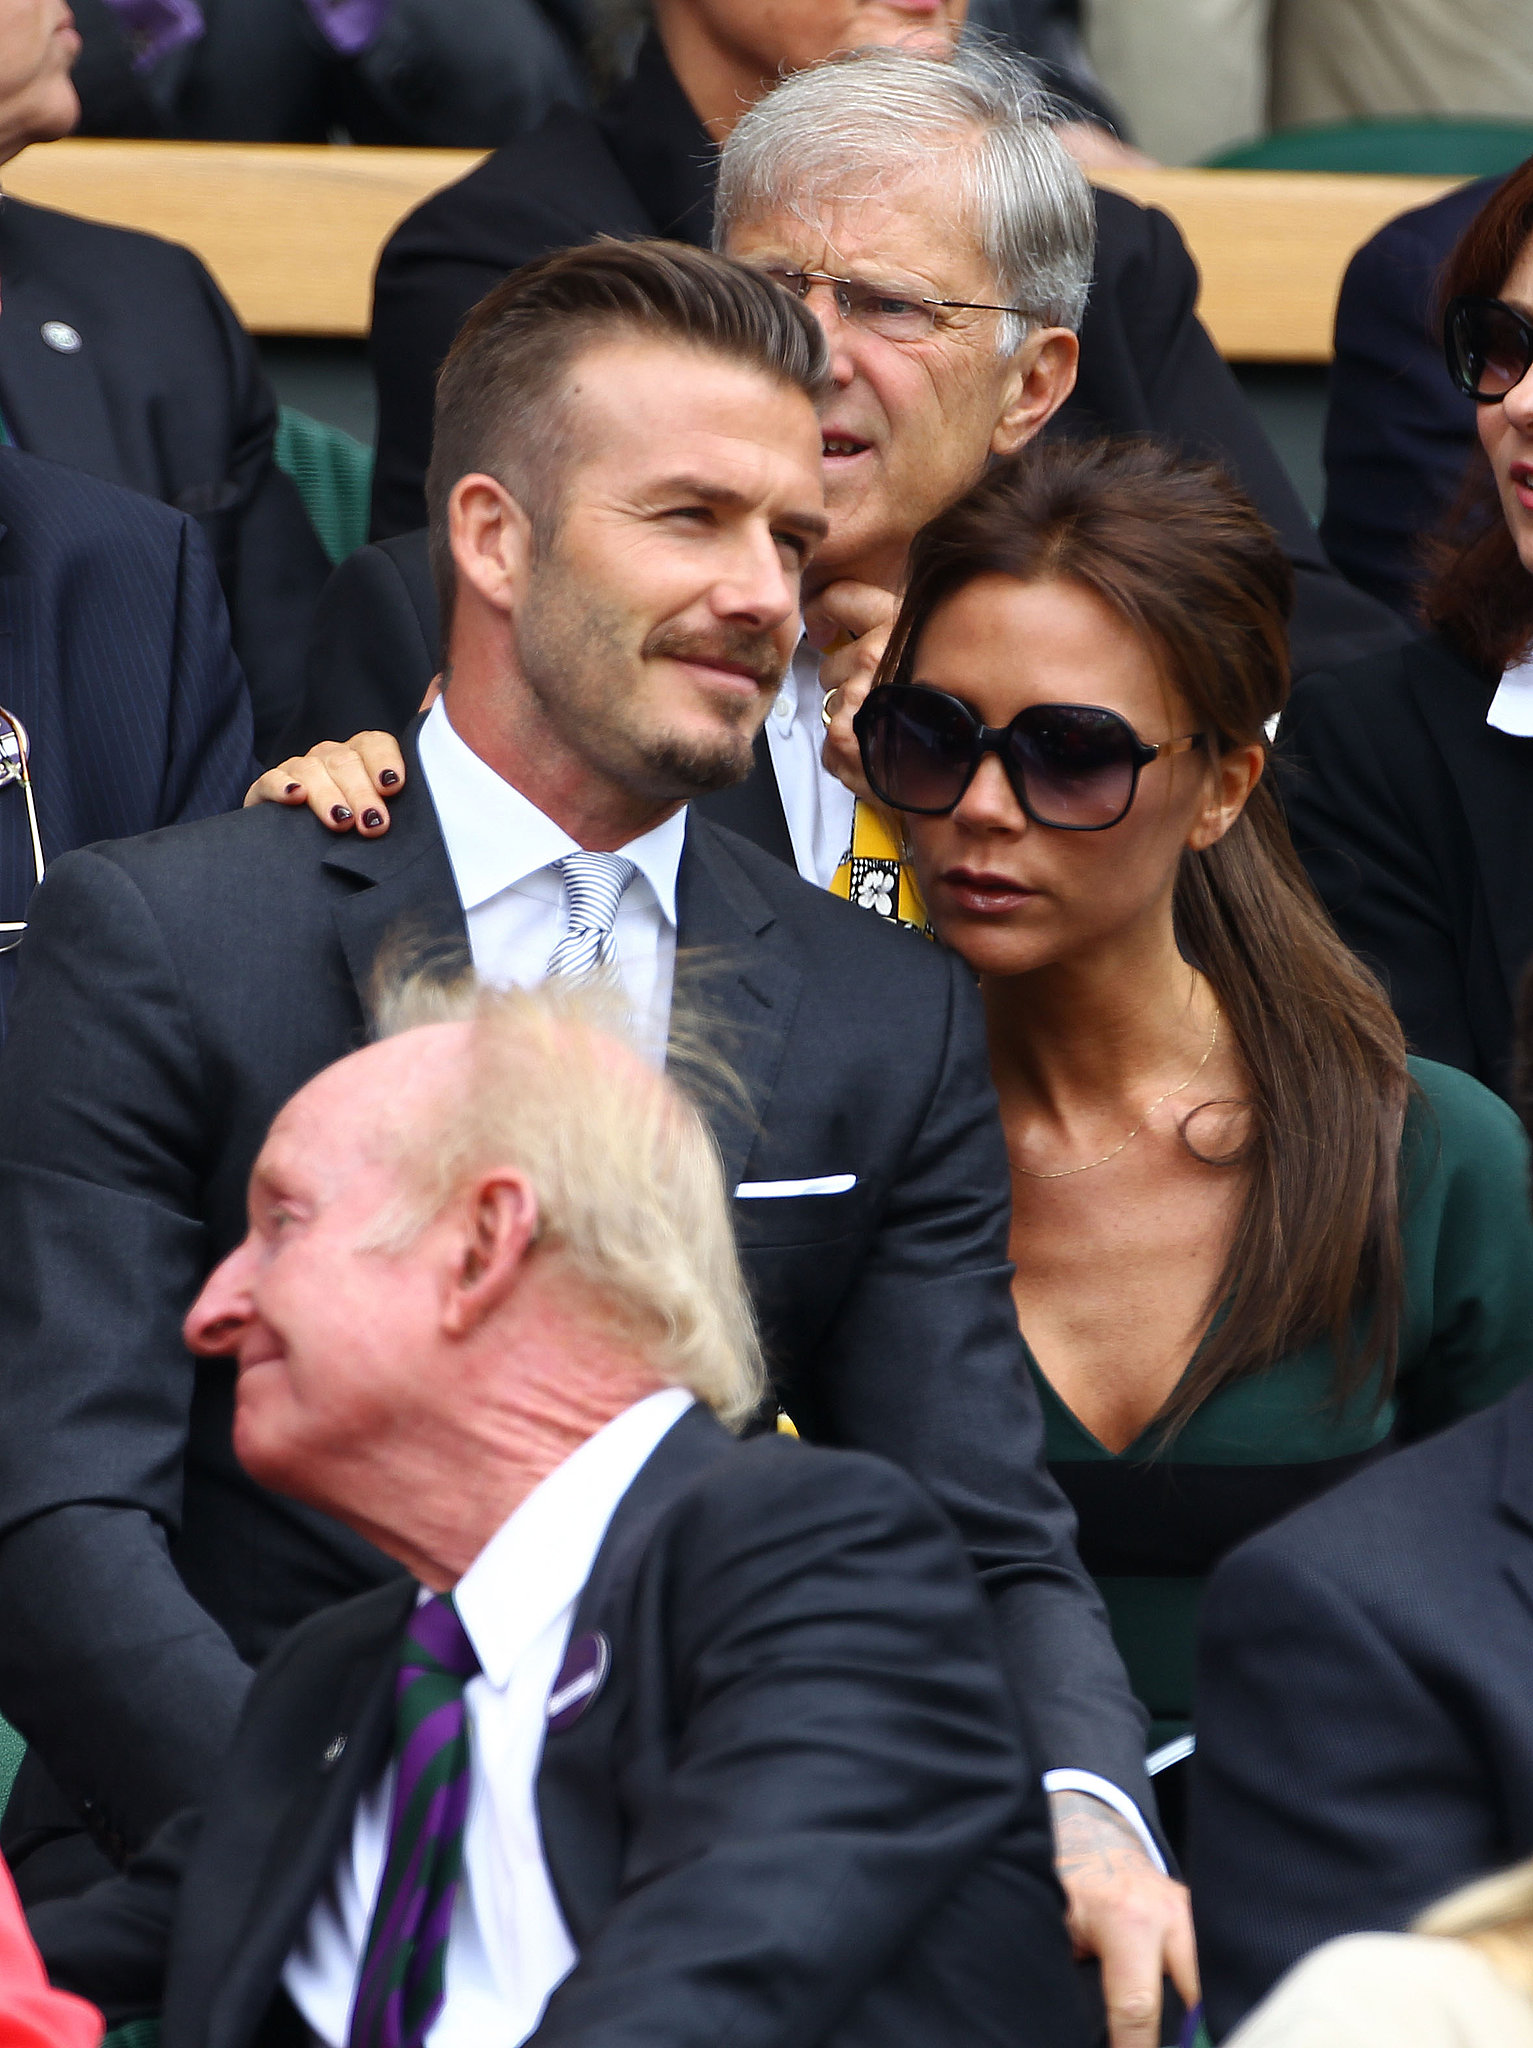 David and Victoria stayed close while they watched Wimbledon in July 2012.